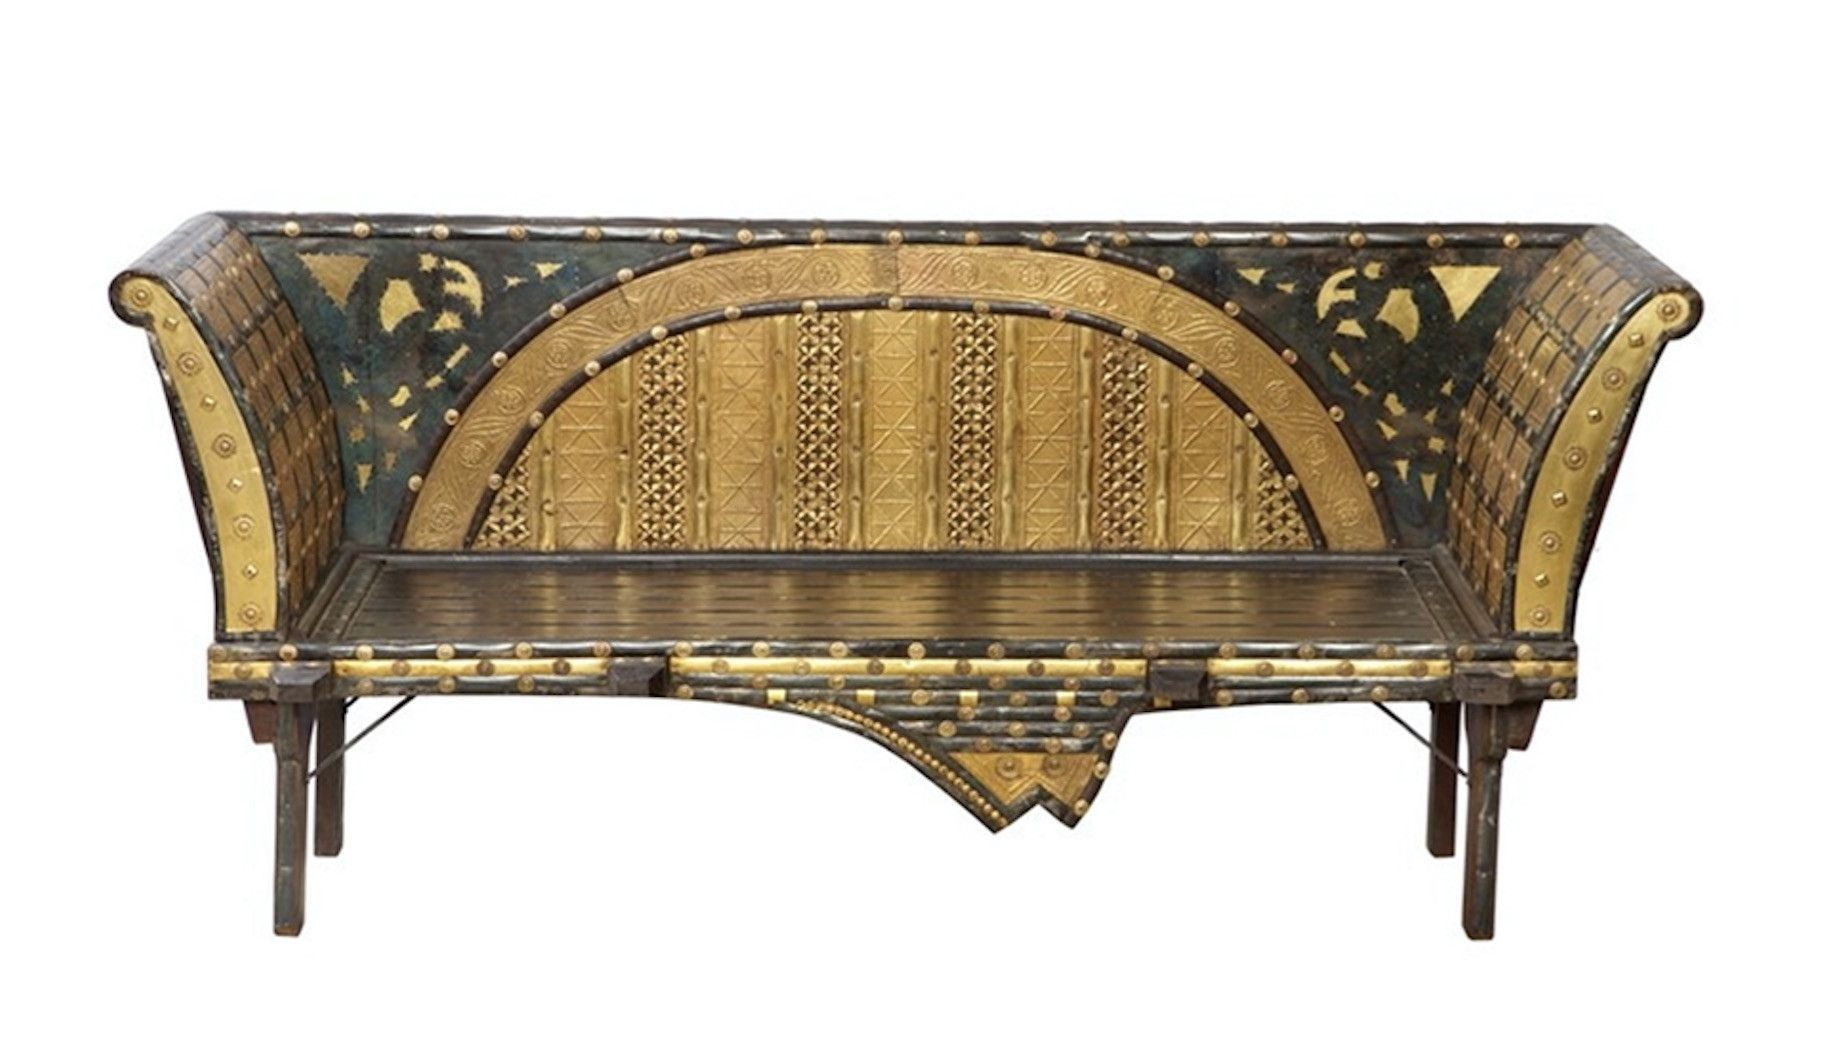 Mogul Antique Ox Cart Bench handcrafted in India